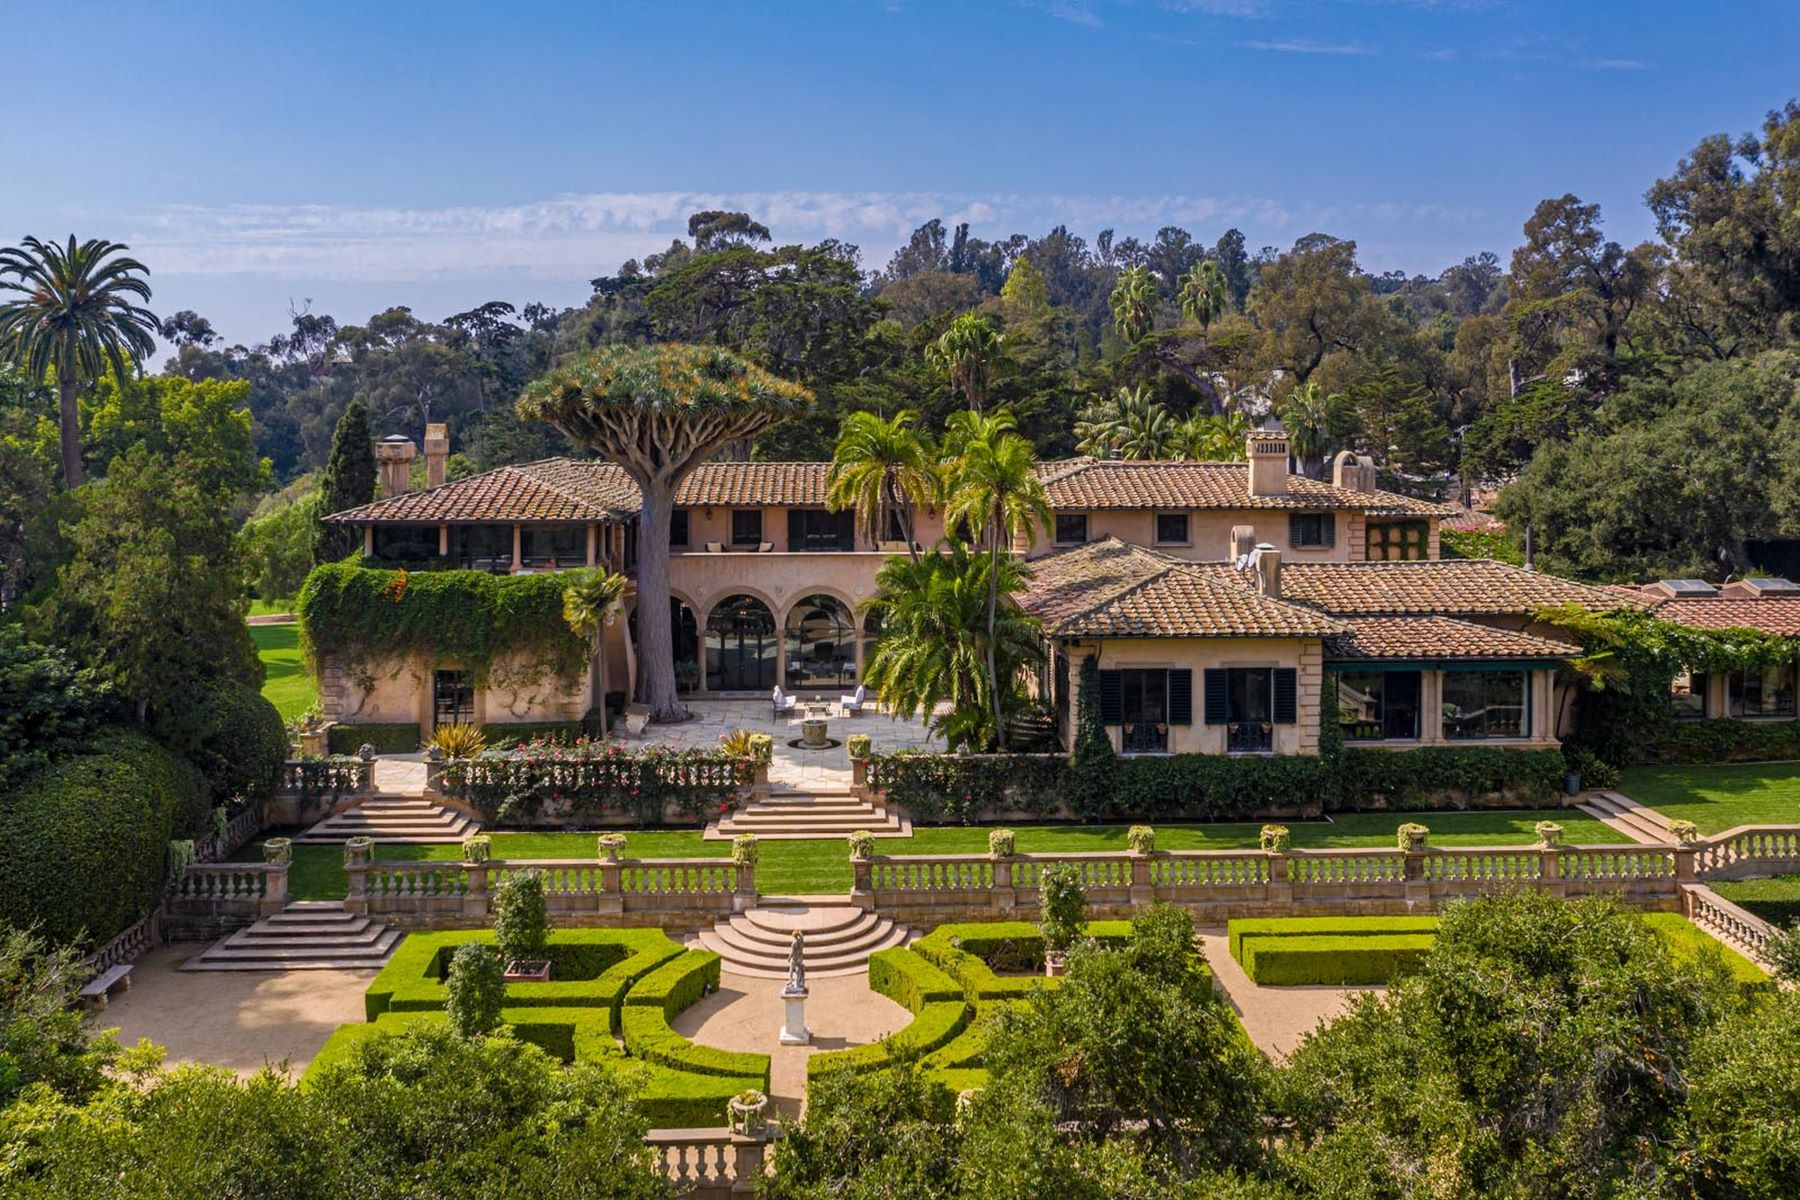 Single Family Homes for Sale at 2845 Sycamore Canyon Road Montecito, California 93108 United States